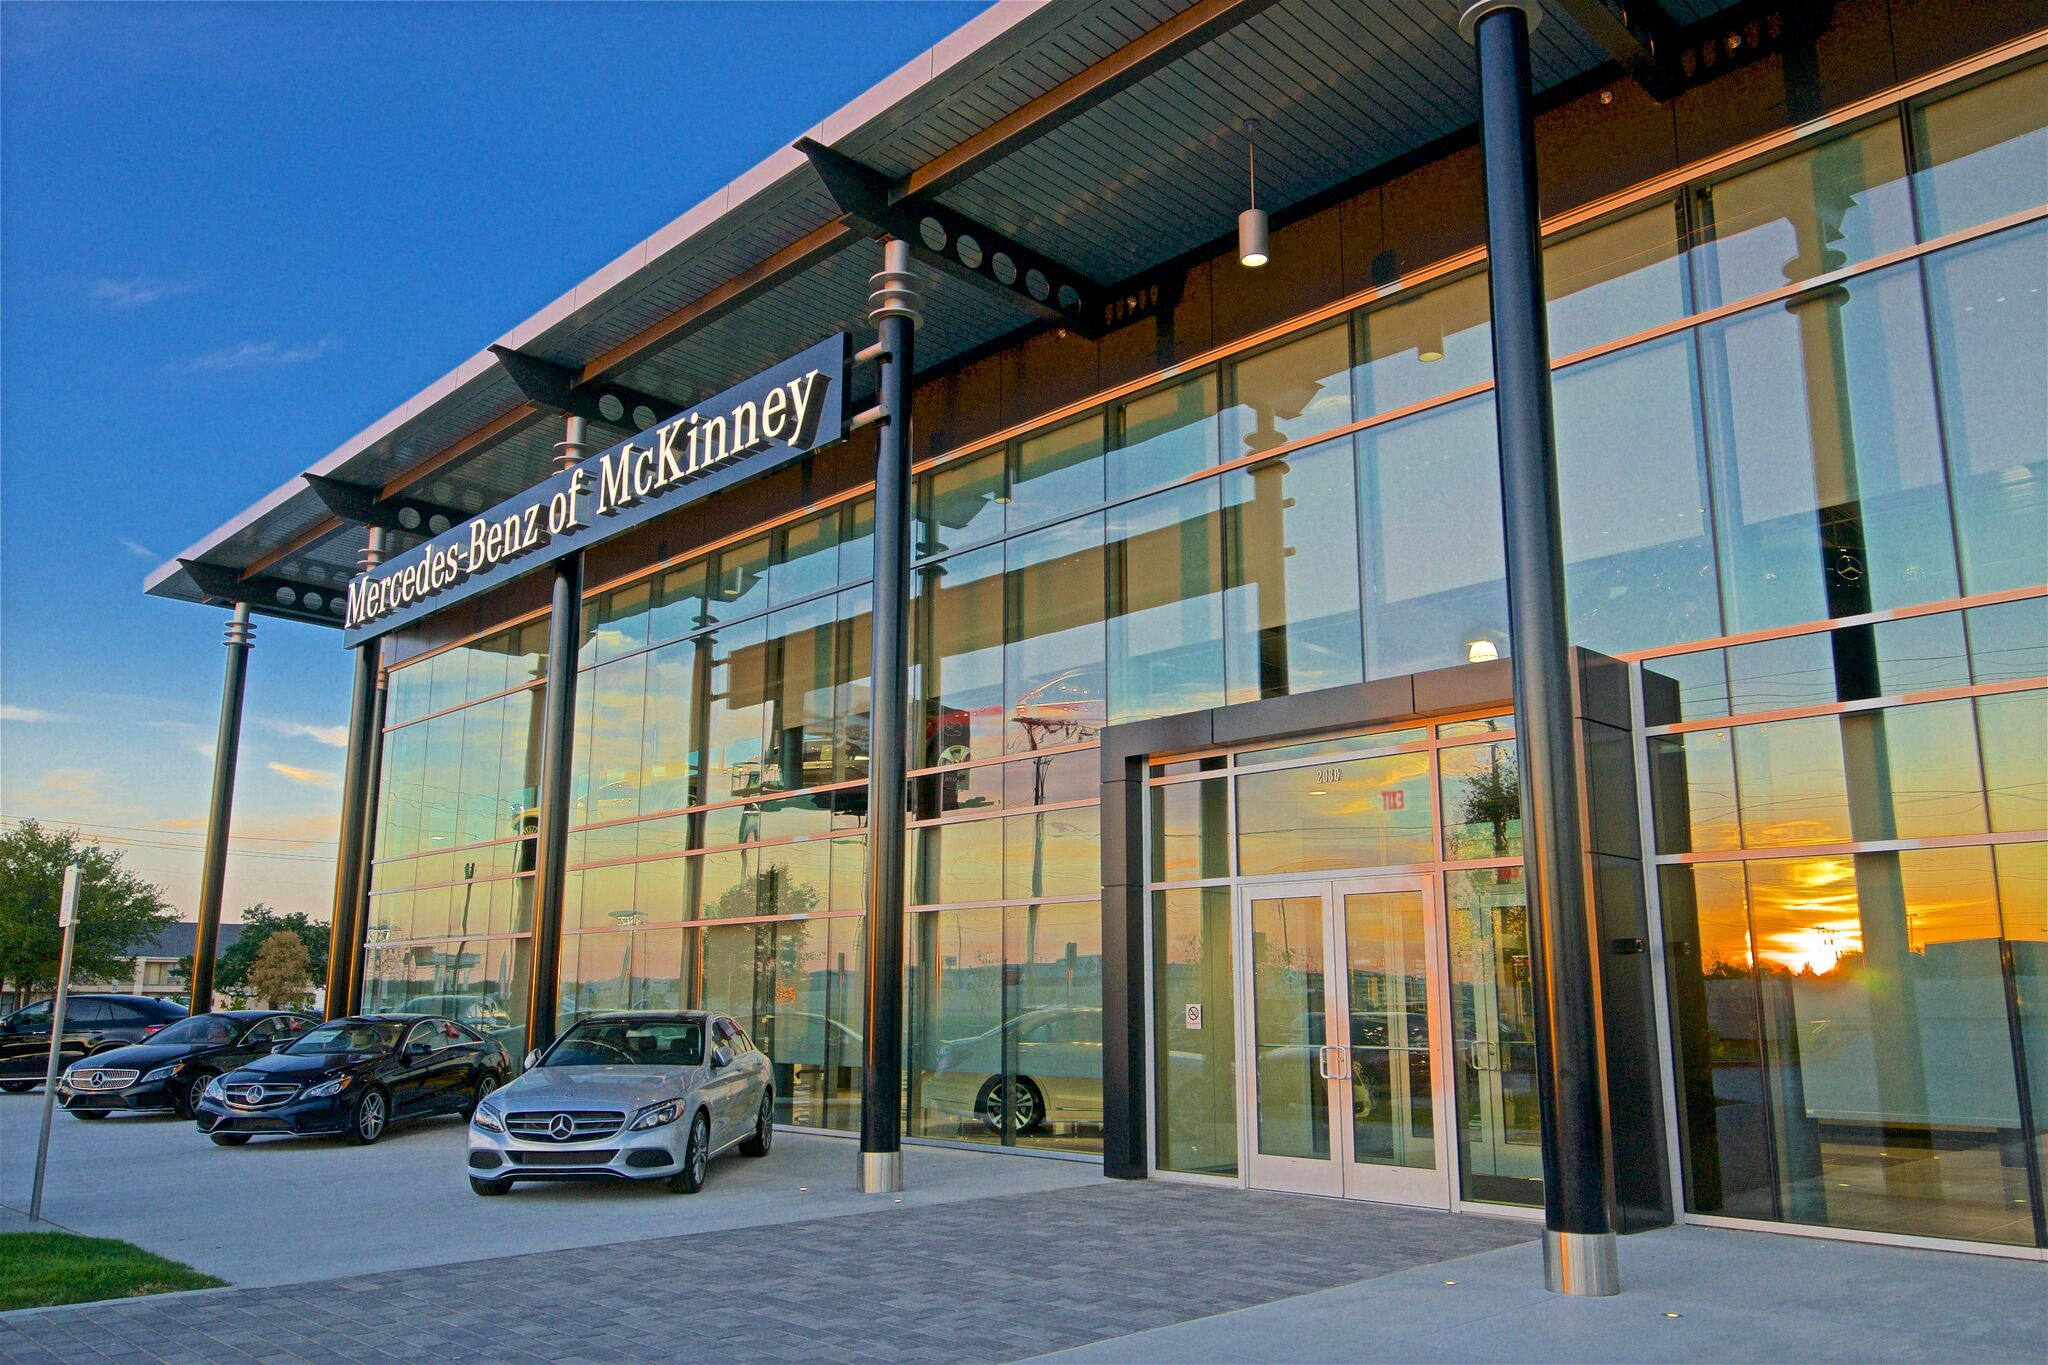 Mercedes-Benz of McKinney exterior